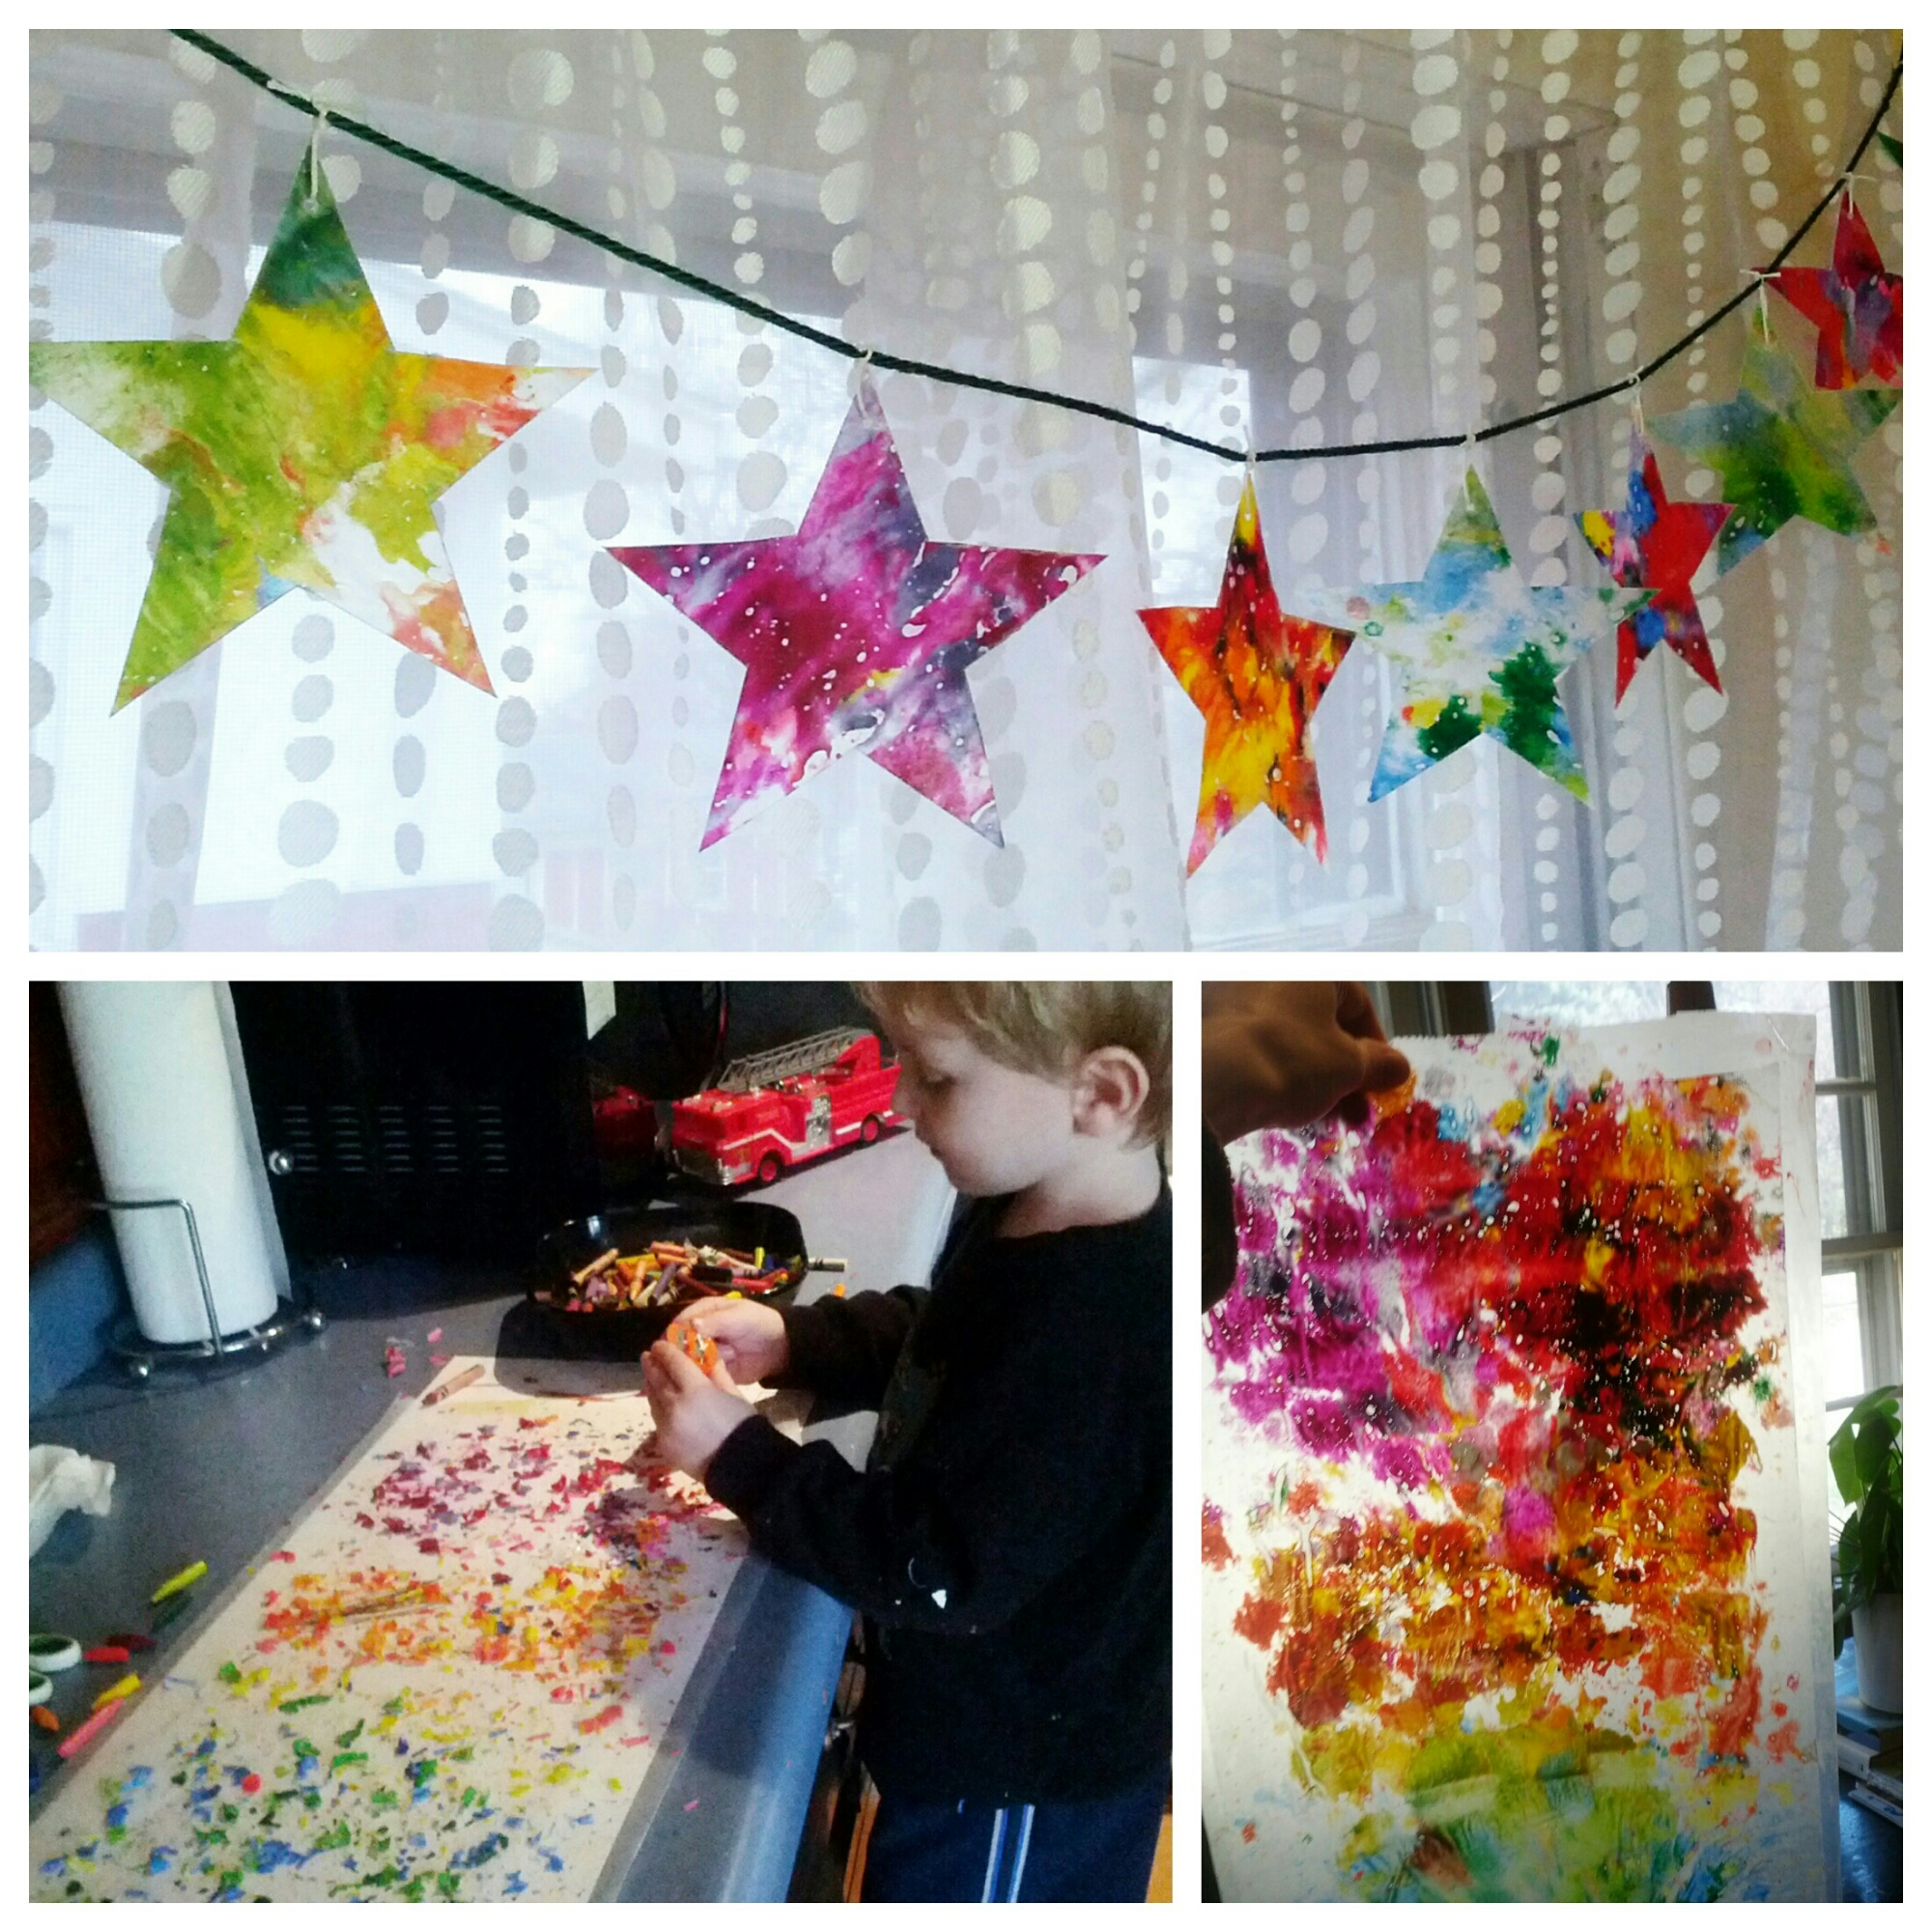 Kids Christmas diy paper star ornament craft uses crayons & wax paper for a faux stained glass hanging that will look amazing in any window. Preschool art project. Make a fun & easy suncatcher for the holidays. By Shalom Schultz Designs.